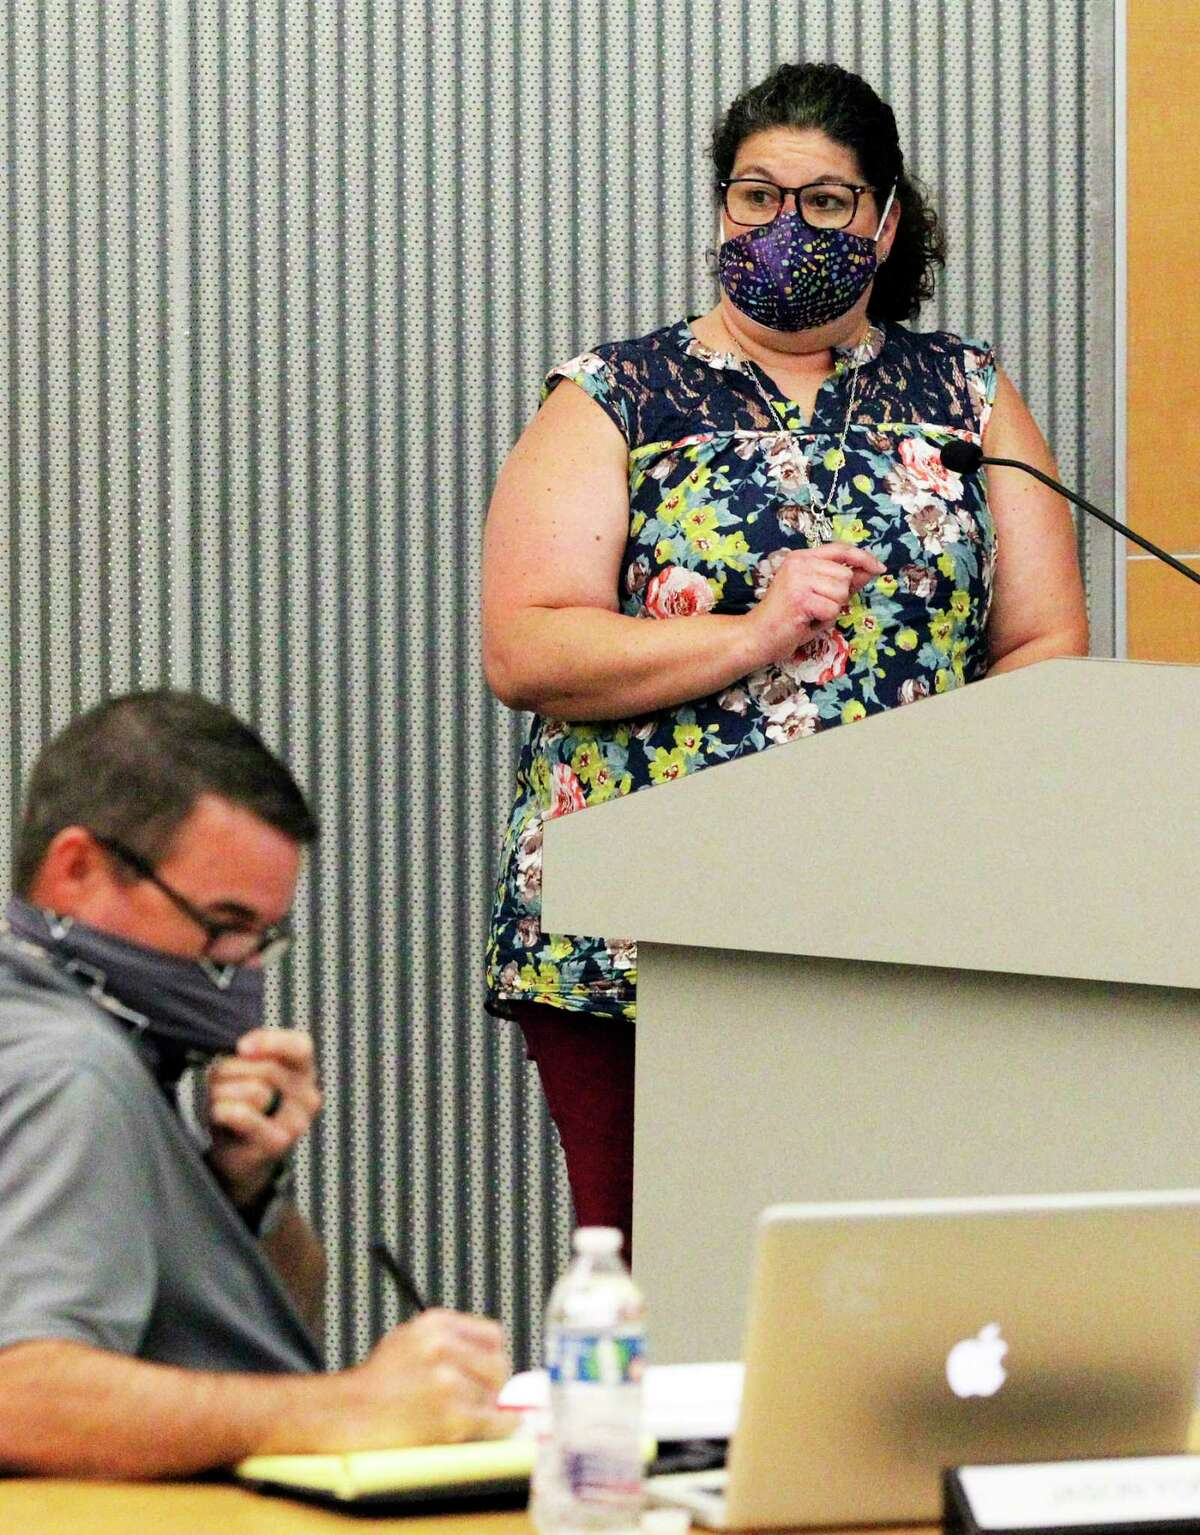 Comal Independent School District board decided Tuesday, March, 9, 2021, to make mask-wearing optional for students and staff. Teacher Kate Fraser, seen here urging the board in August 2020 to require stricter protocols, said the new optional mask decision could make some parents want to pull their children out of in-person learning.